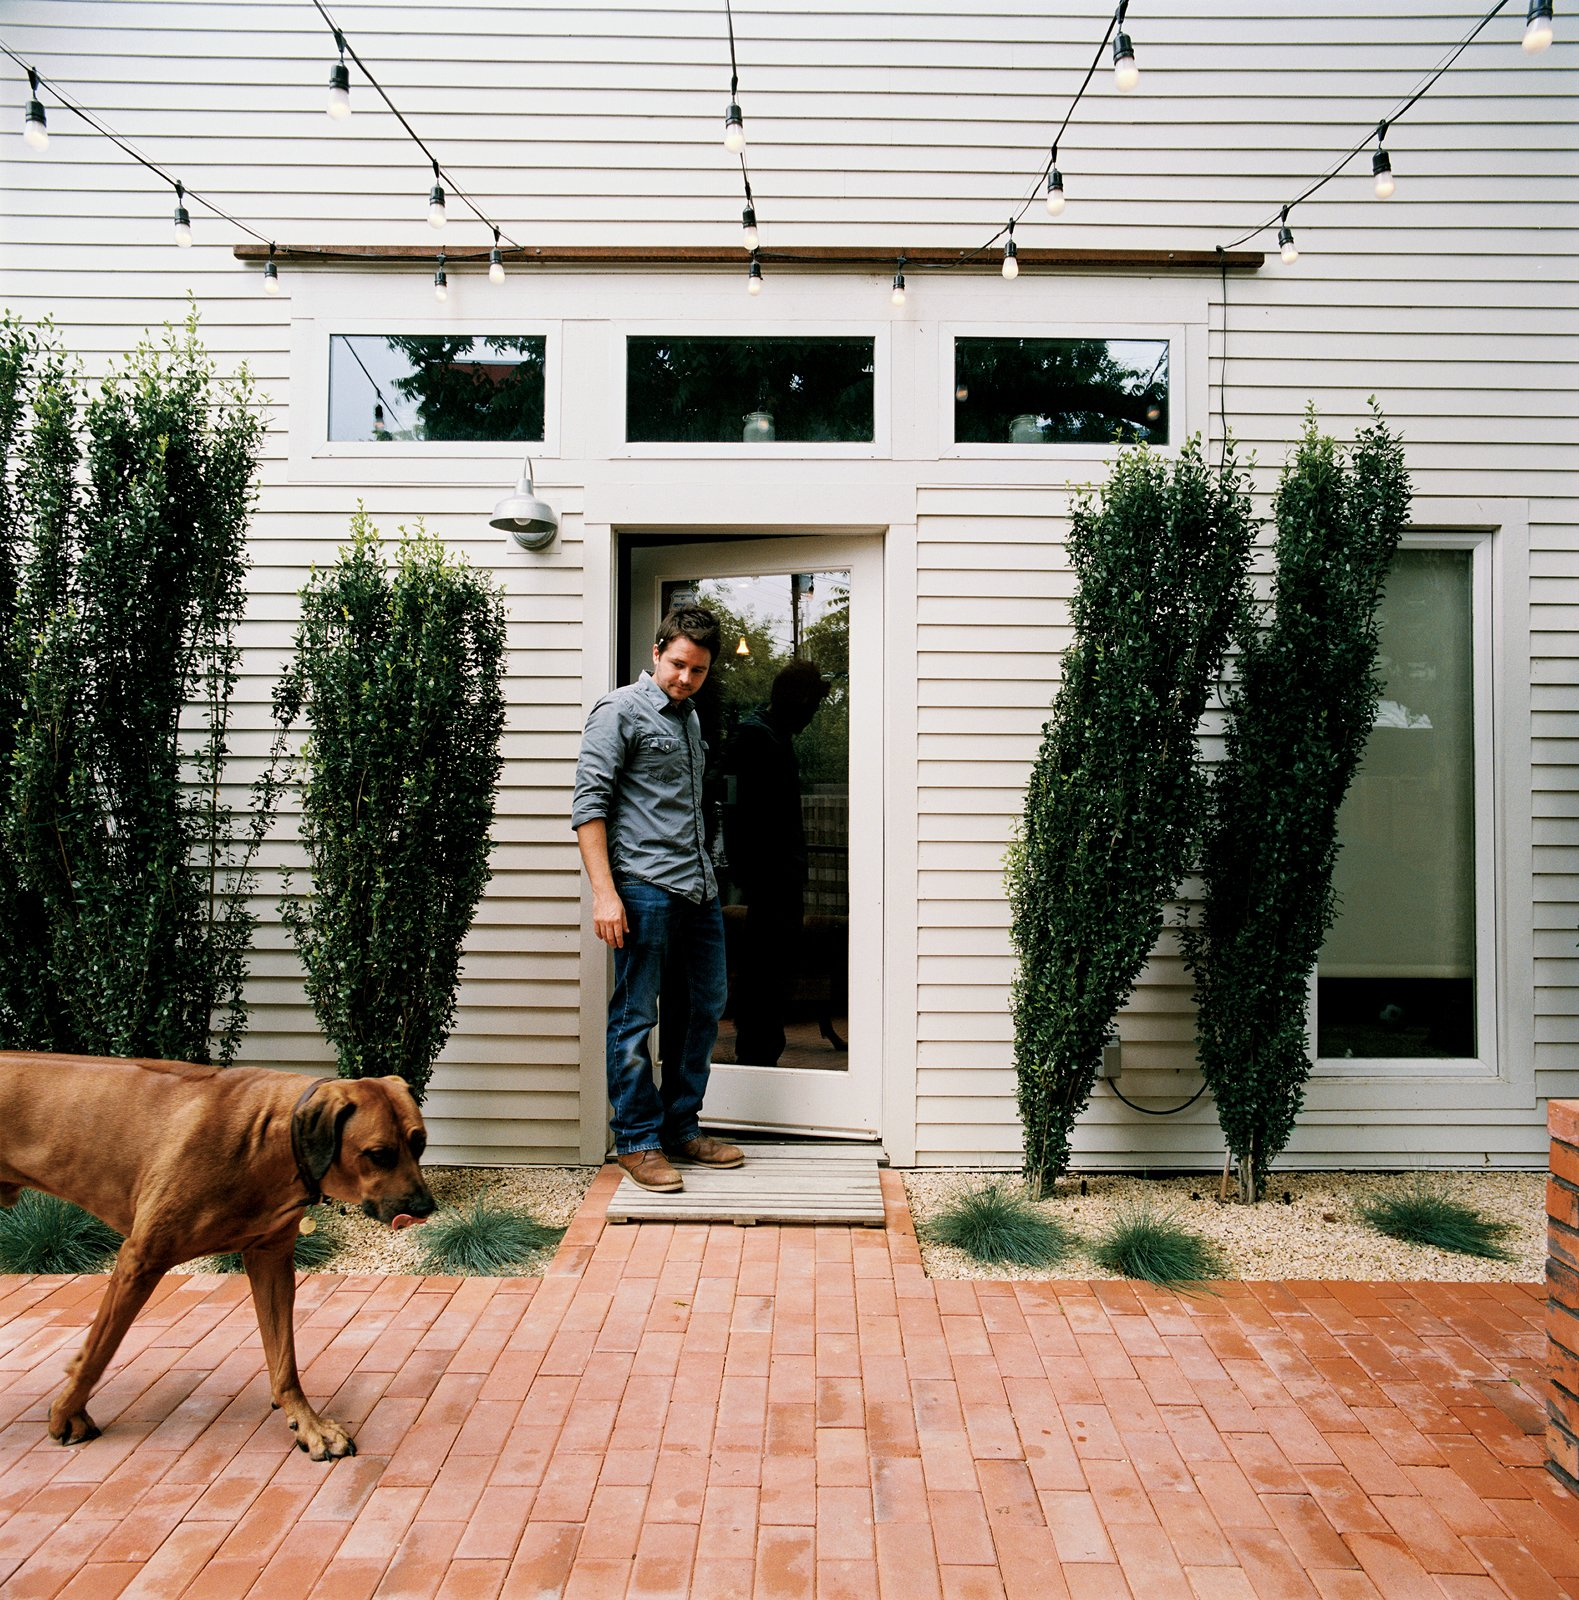 From the side door of his restored two-bedroom bungalow, Dollahite watches his   dog West inspect the newly installed low-maintenance landscaping and brick patio. Tagged: Outdoor, Back Yard, Trees, Shrubs, Pavers Patio, Porch, Deck, and Hanging Lighting.  Photo 8 of 25 in Leap Into the Year of the Dog With These 25 Pups in the Modern World from Salvage Love